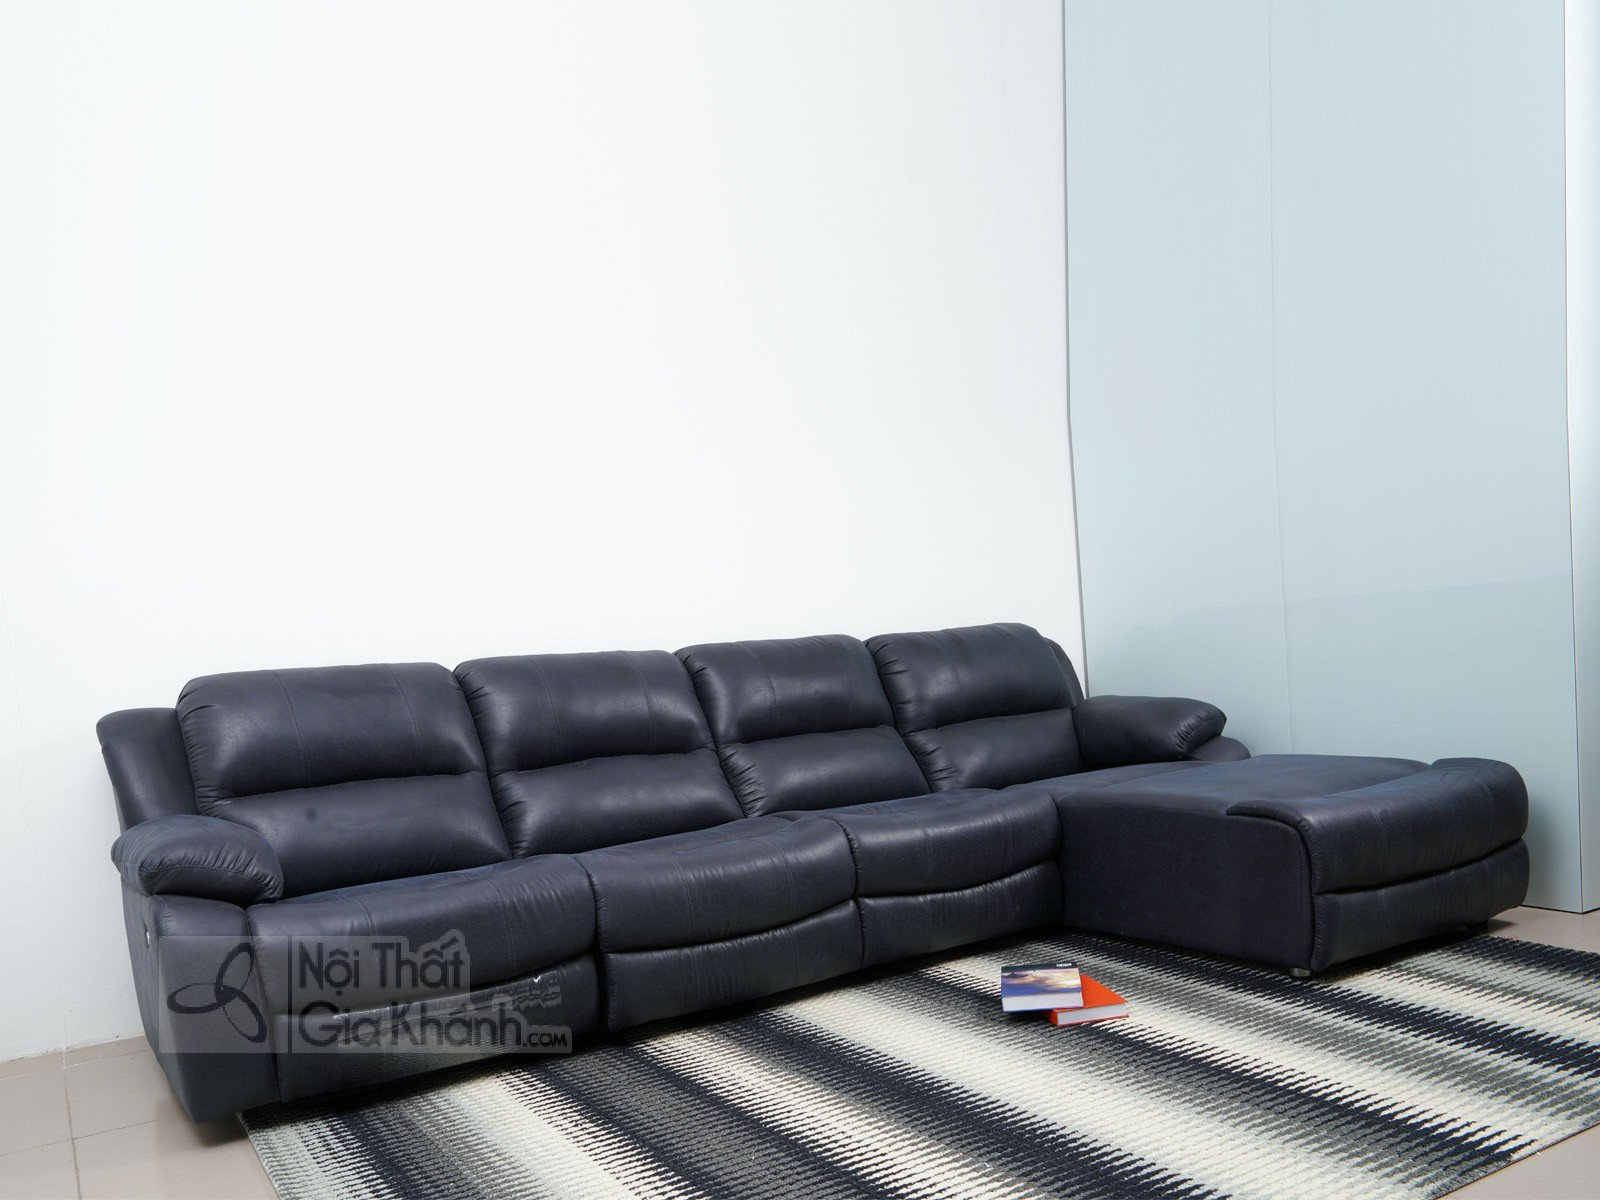 Sofa Hien Dai Mr843Sf 3200X1800X1000 1